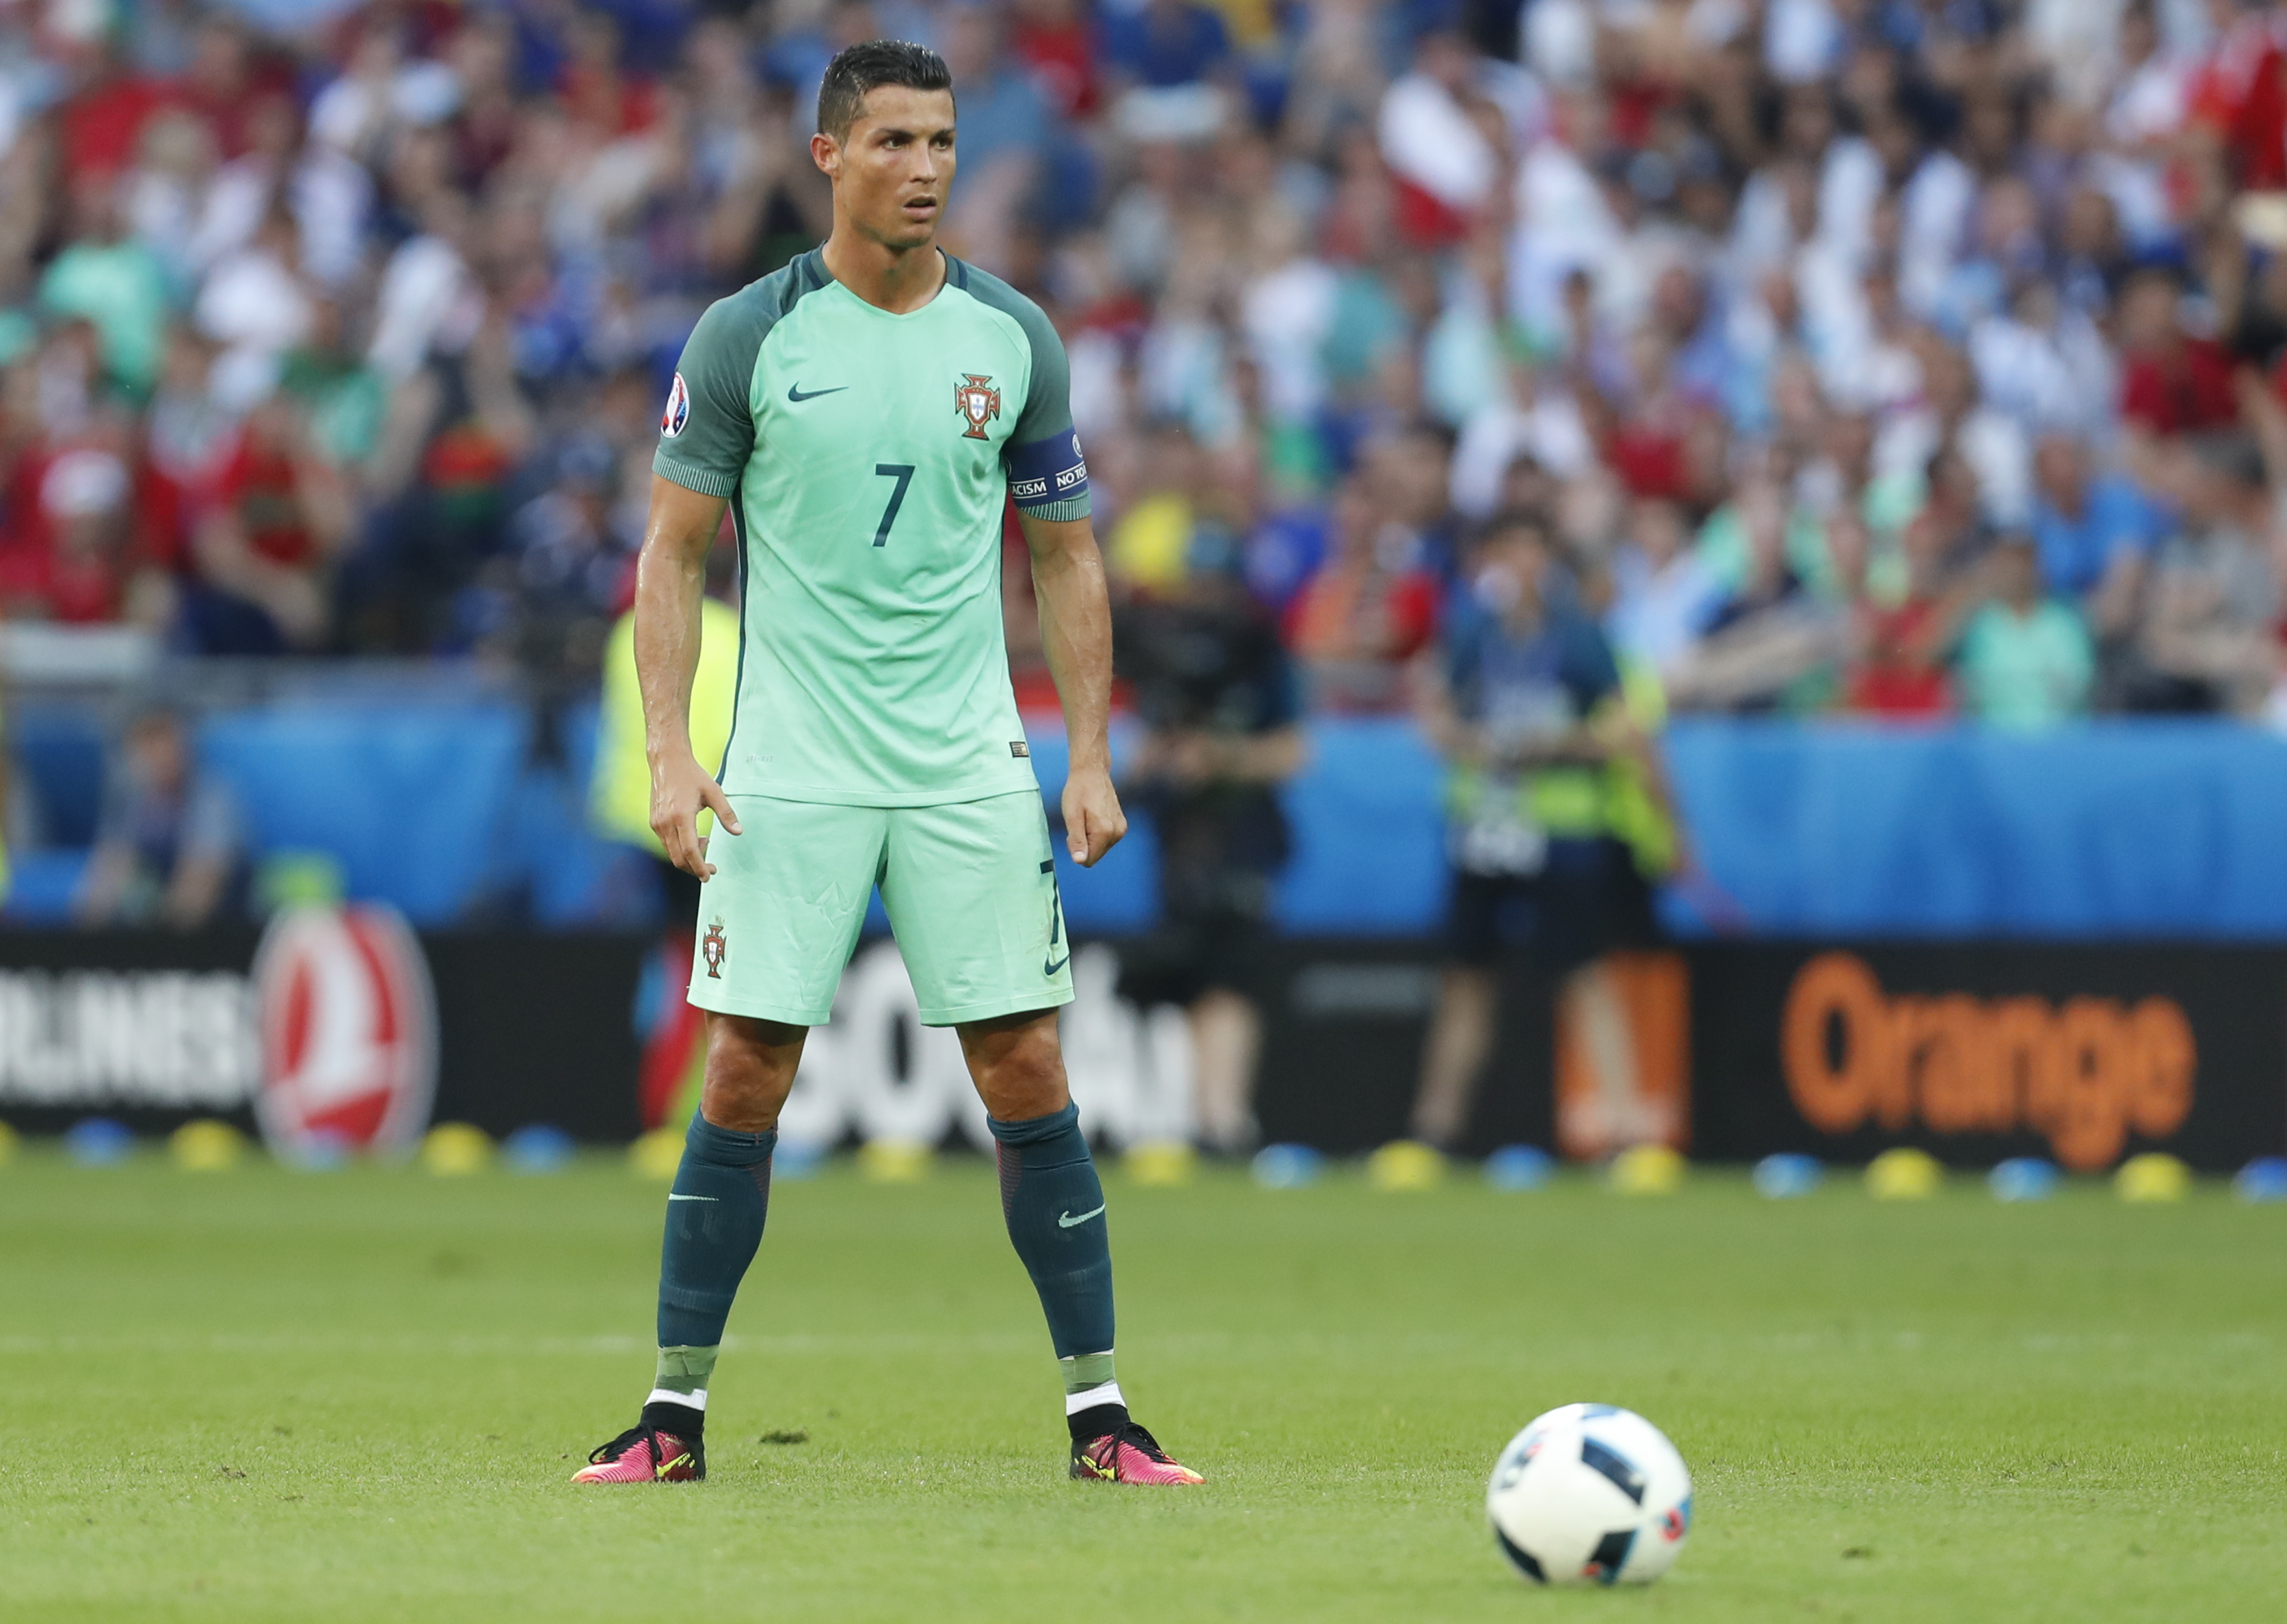 Ronaldo scores 2 in Portugal's 3-3 draw with Hungary | WTOP